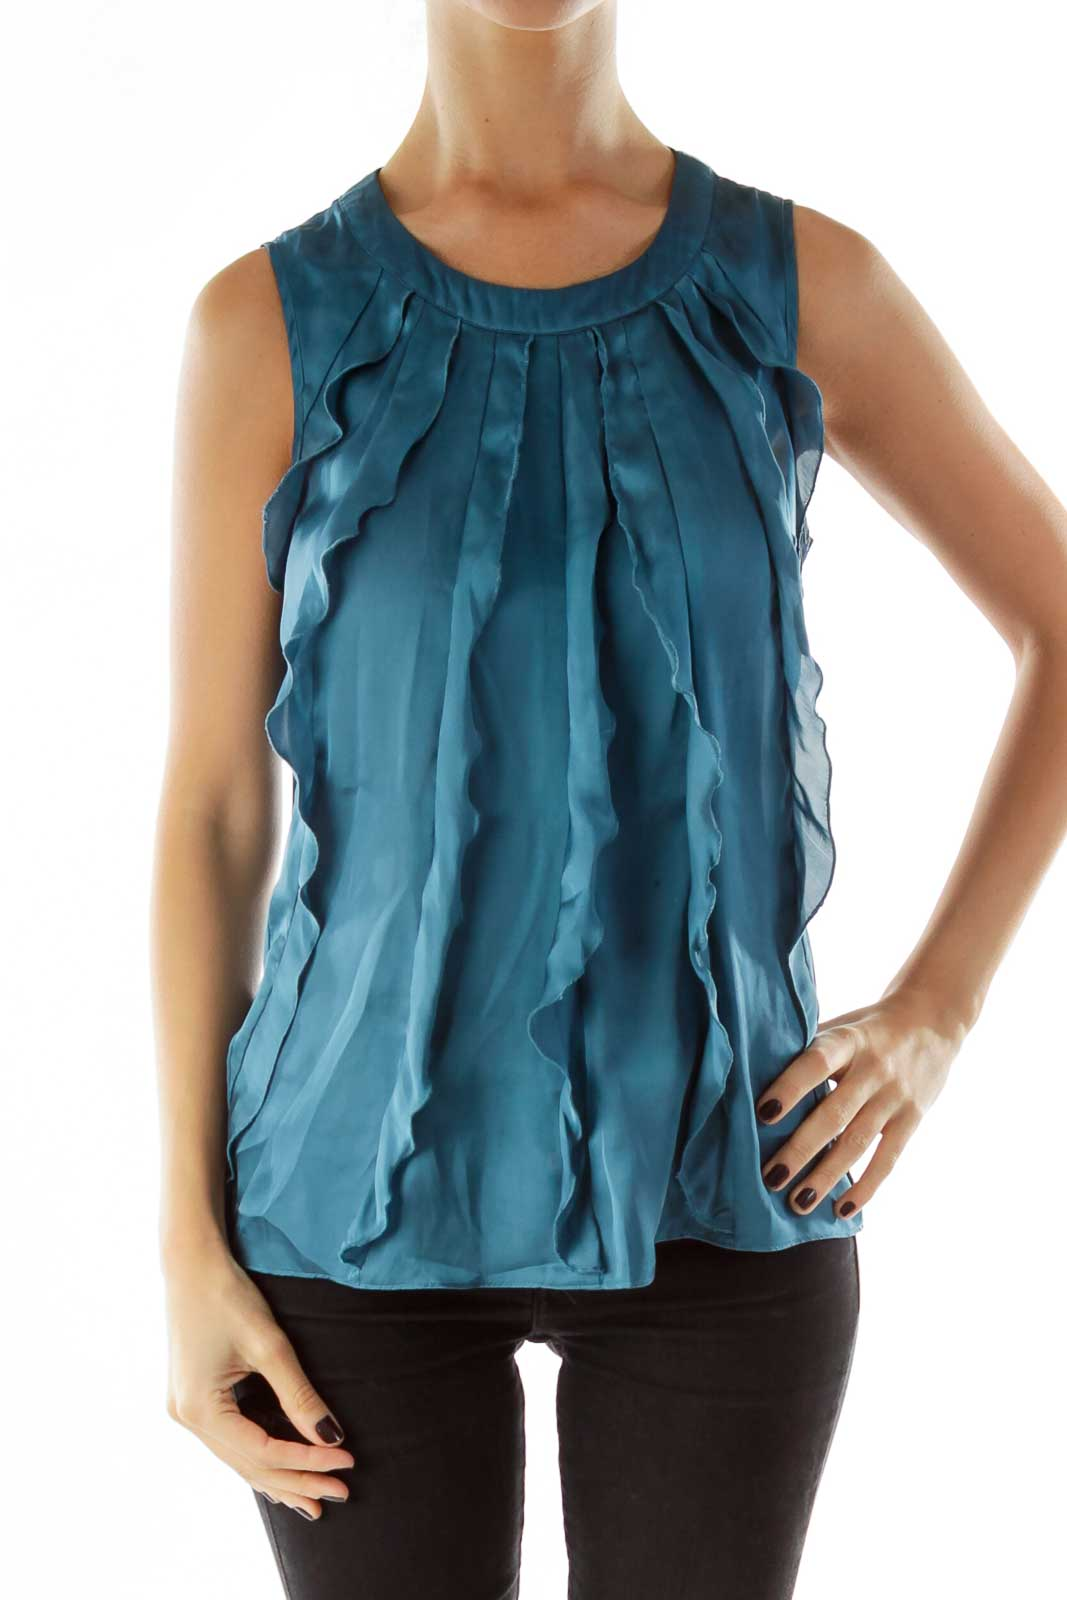 Green Sleeveless Ruffled Blouse